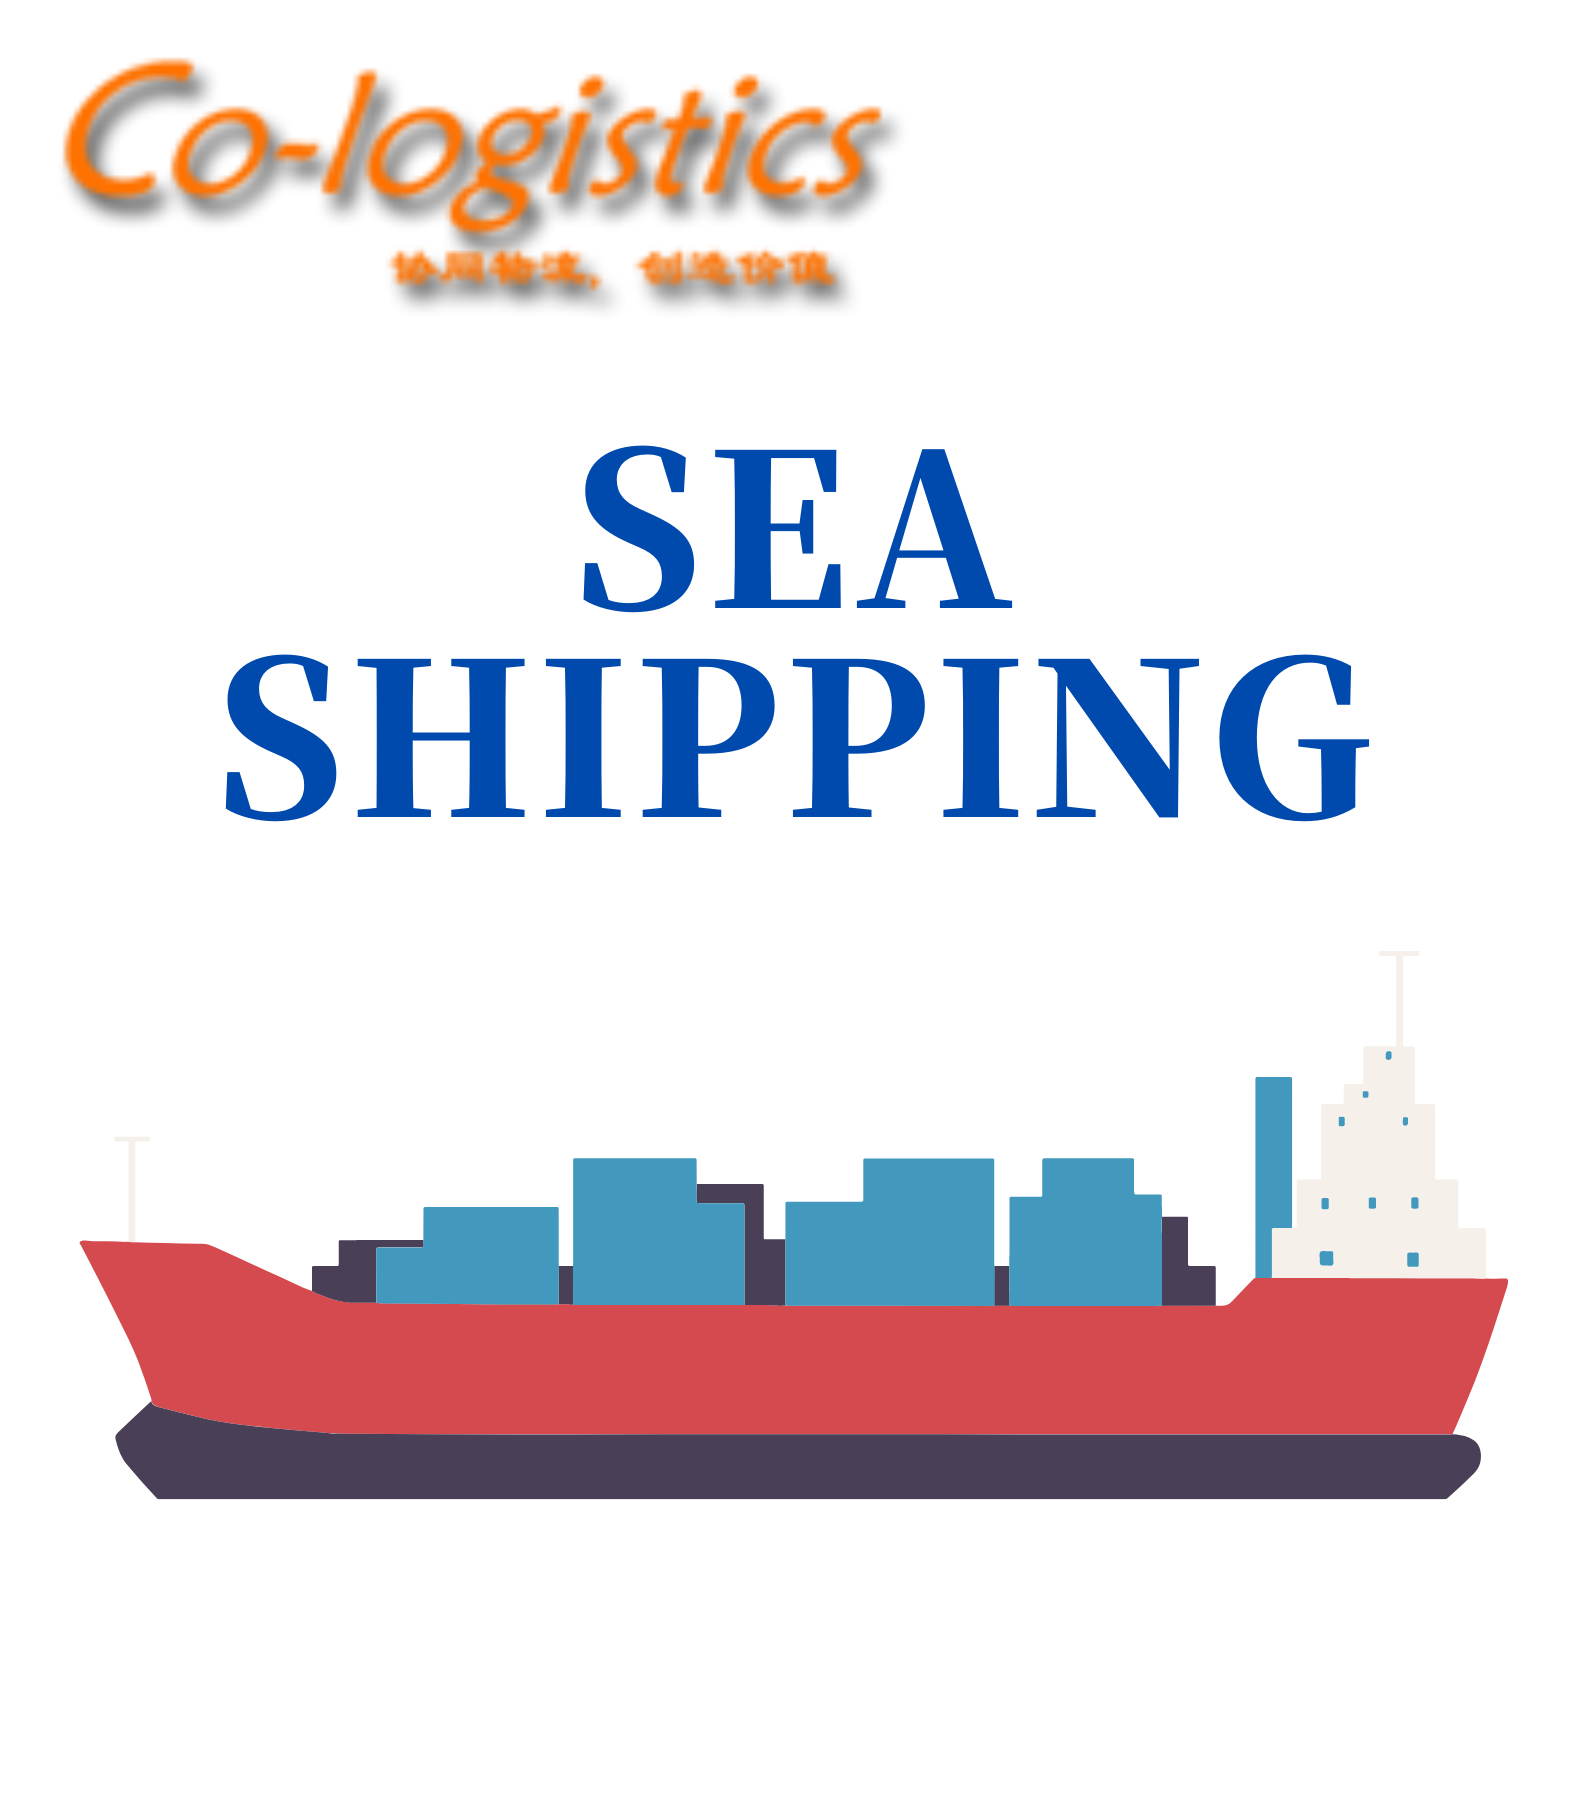 Yiwu free shipping Shenzhen freight forwarder from China cheap sea shipping to USA LA door to door service top freight forwarder